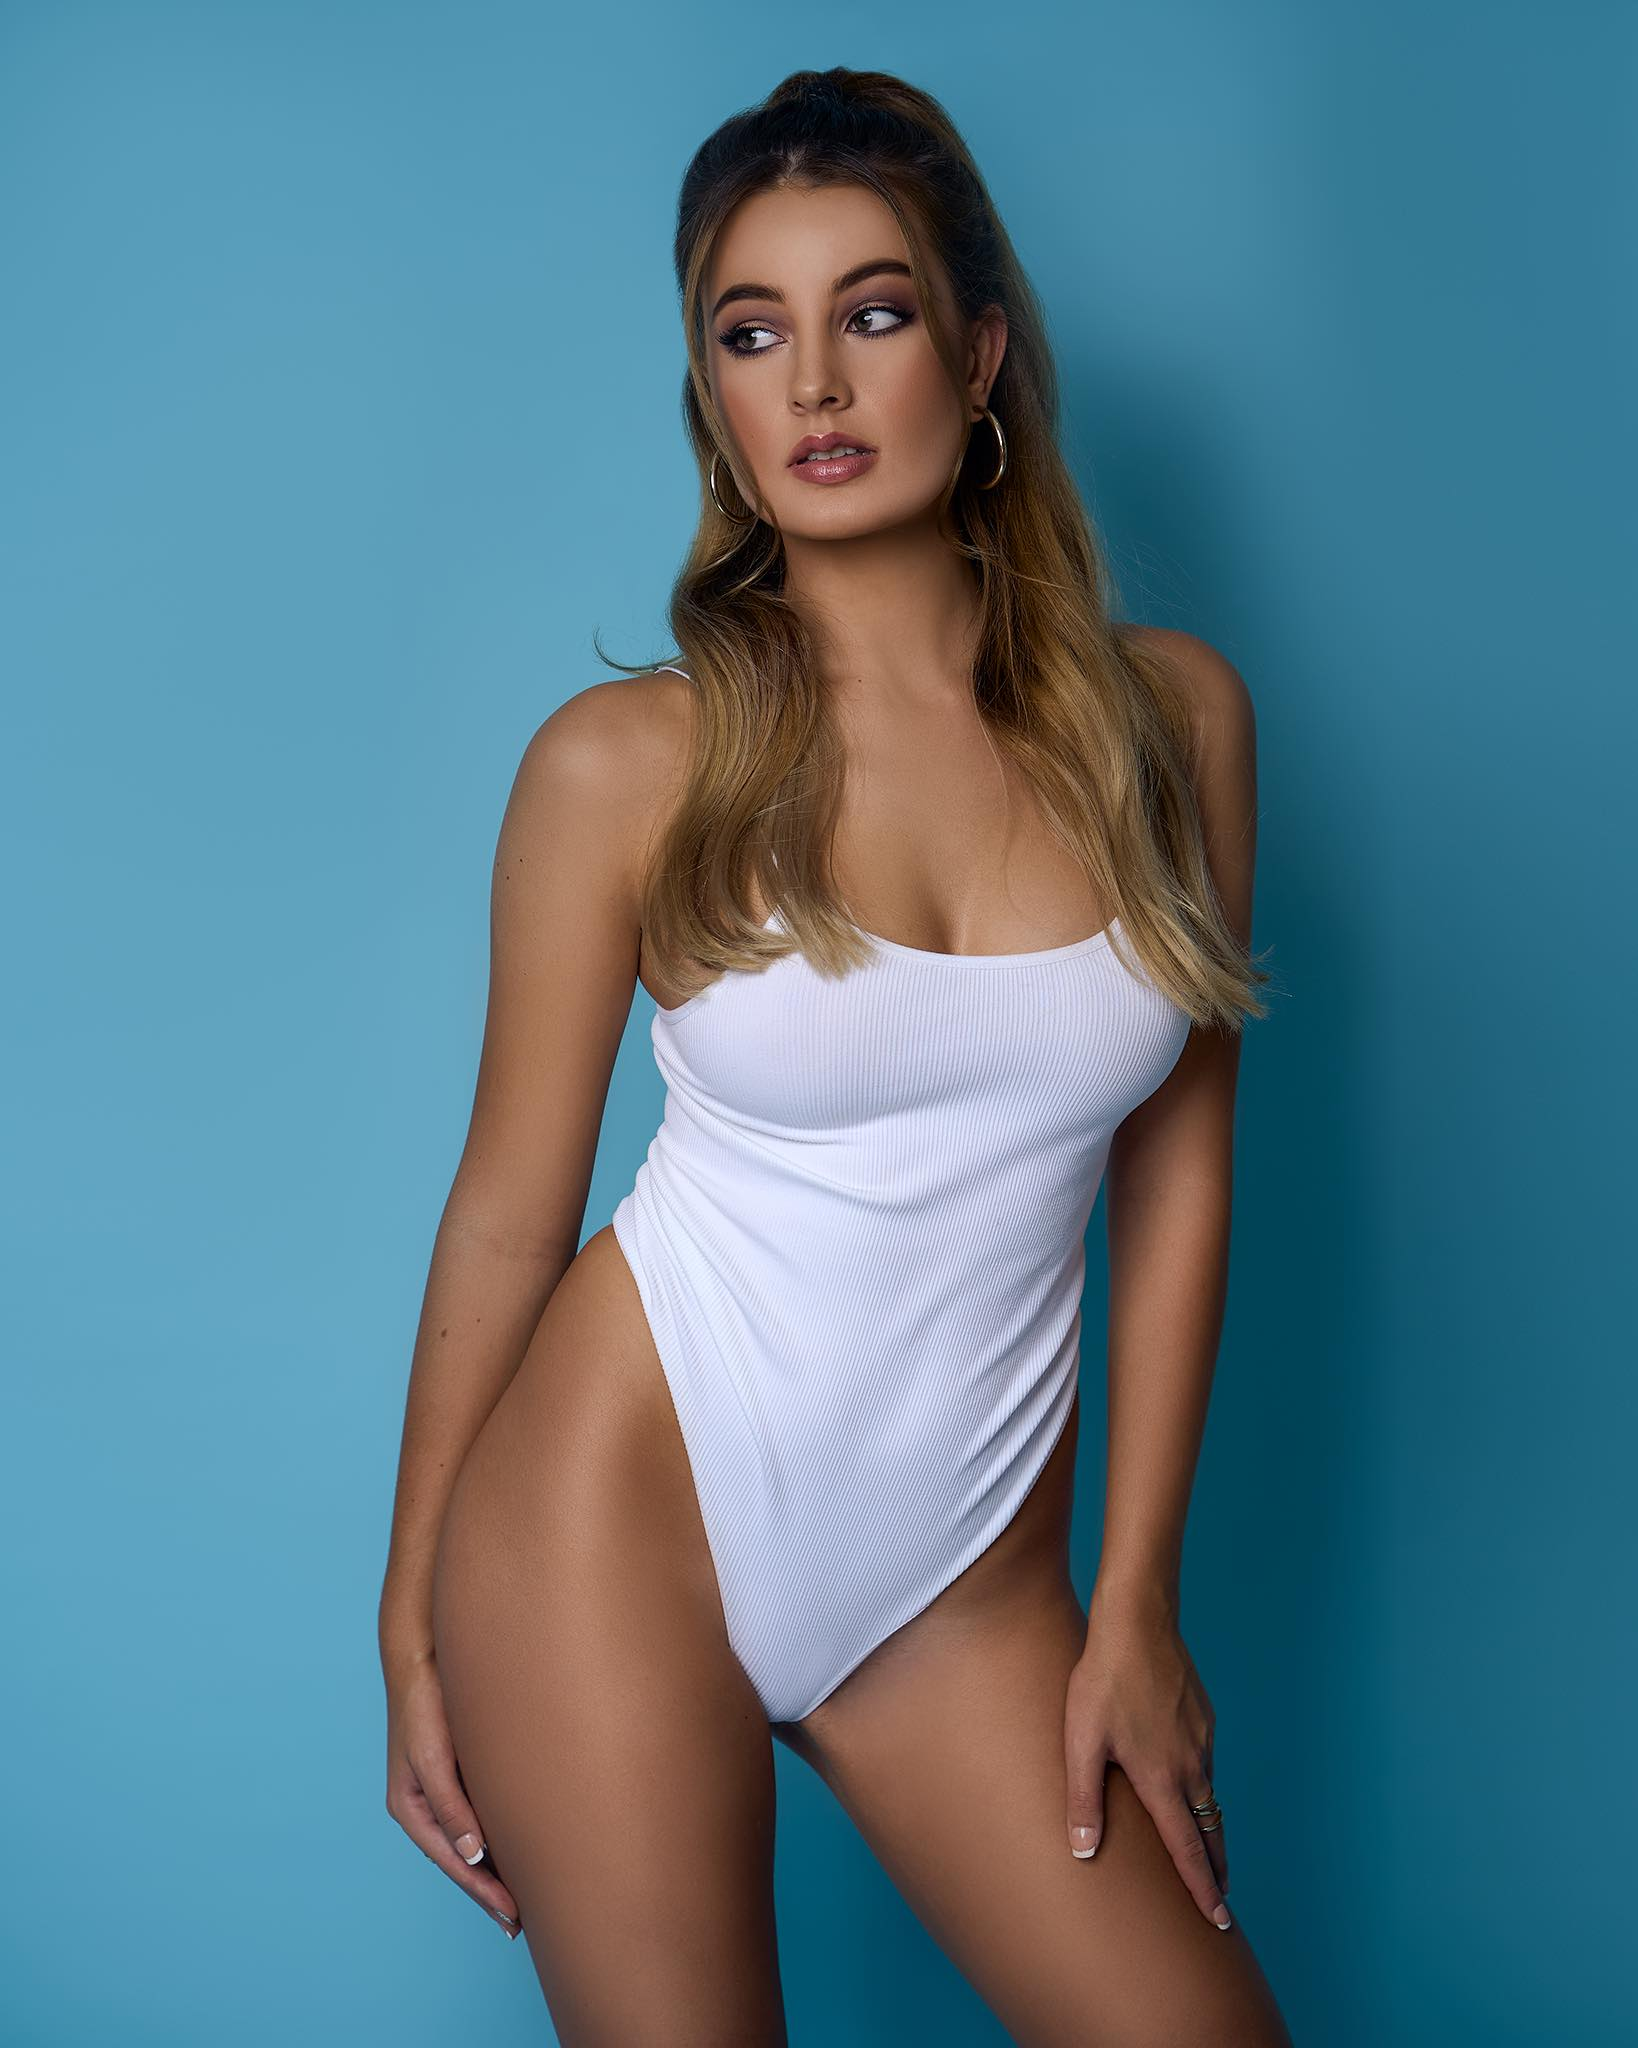 Genive Trimble features as our LW Babe of the Week